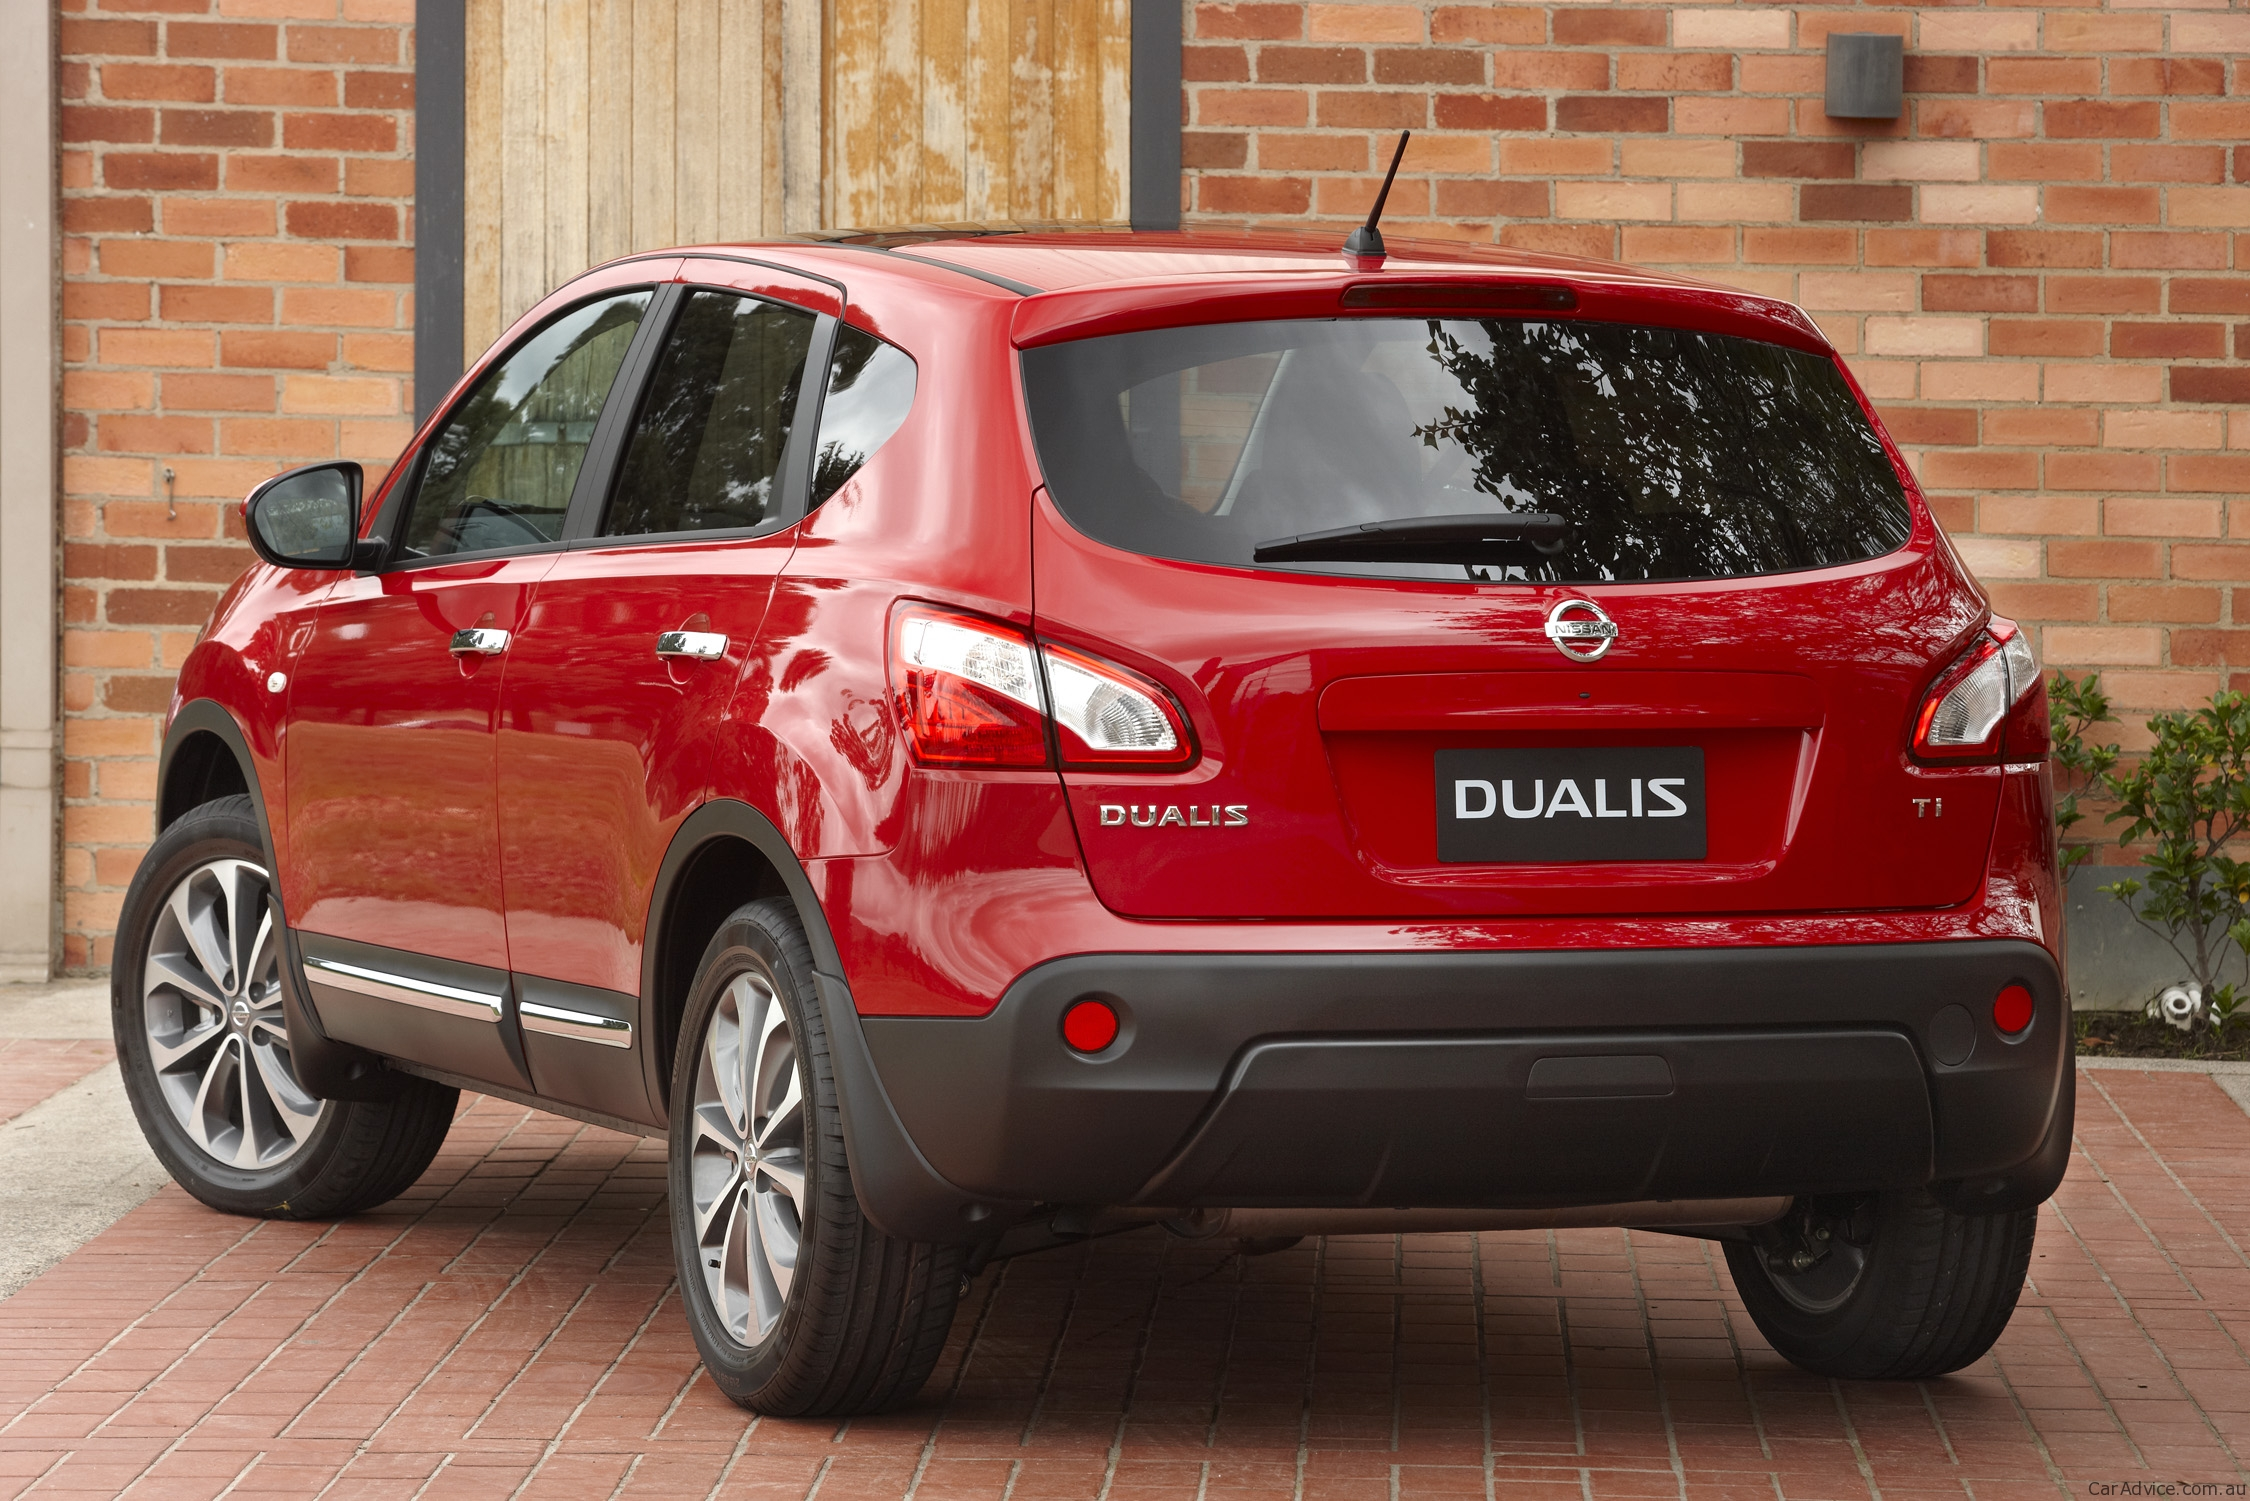 Nissan Dualis Review & Nissan Dualis+2 Review | CarAdvice